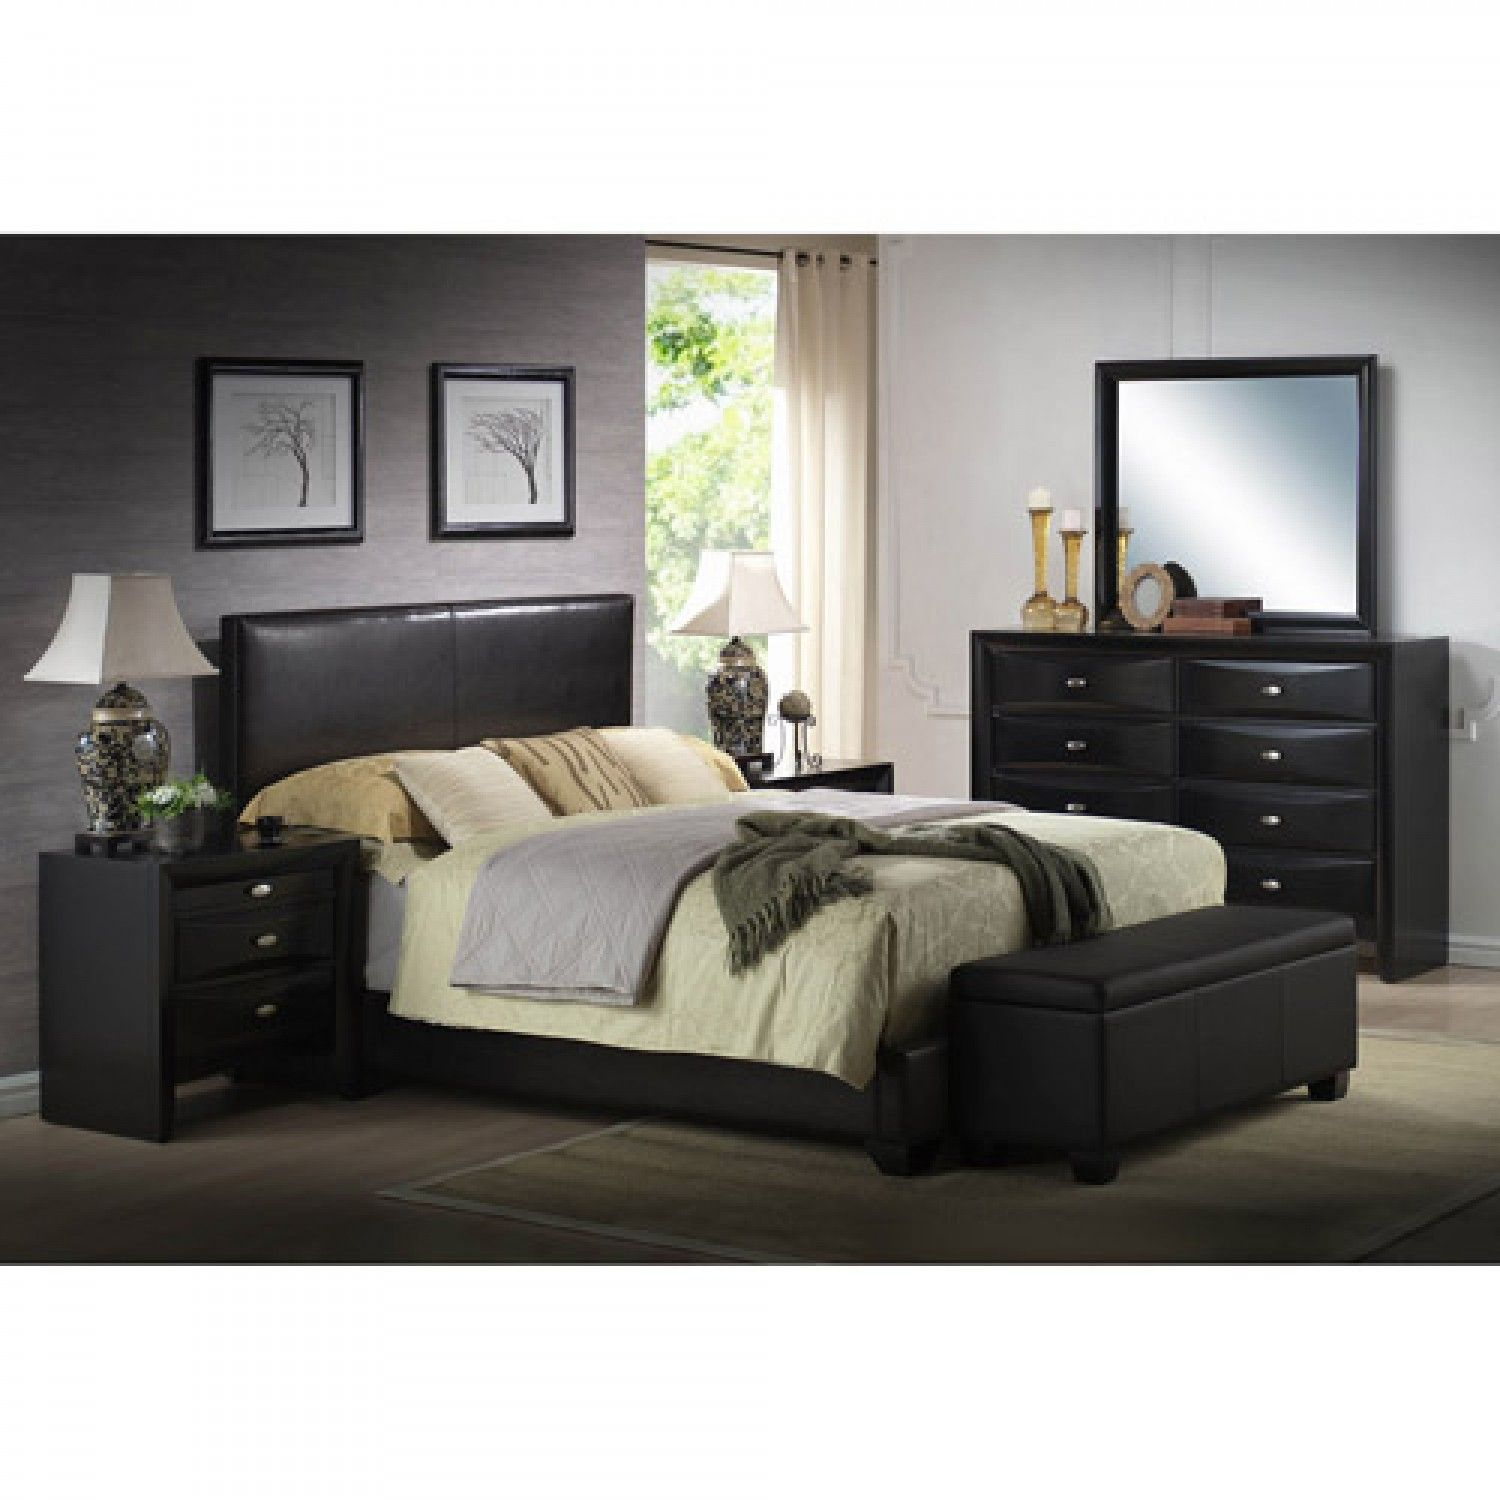 The Ireland Queen Bed Headboard Combines With Footboard And Rails To Form